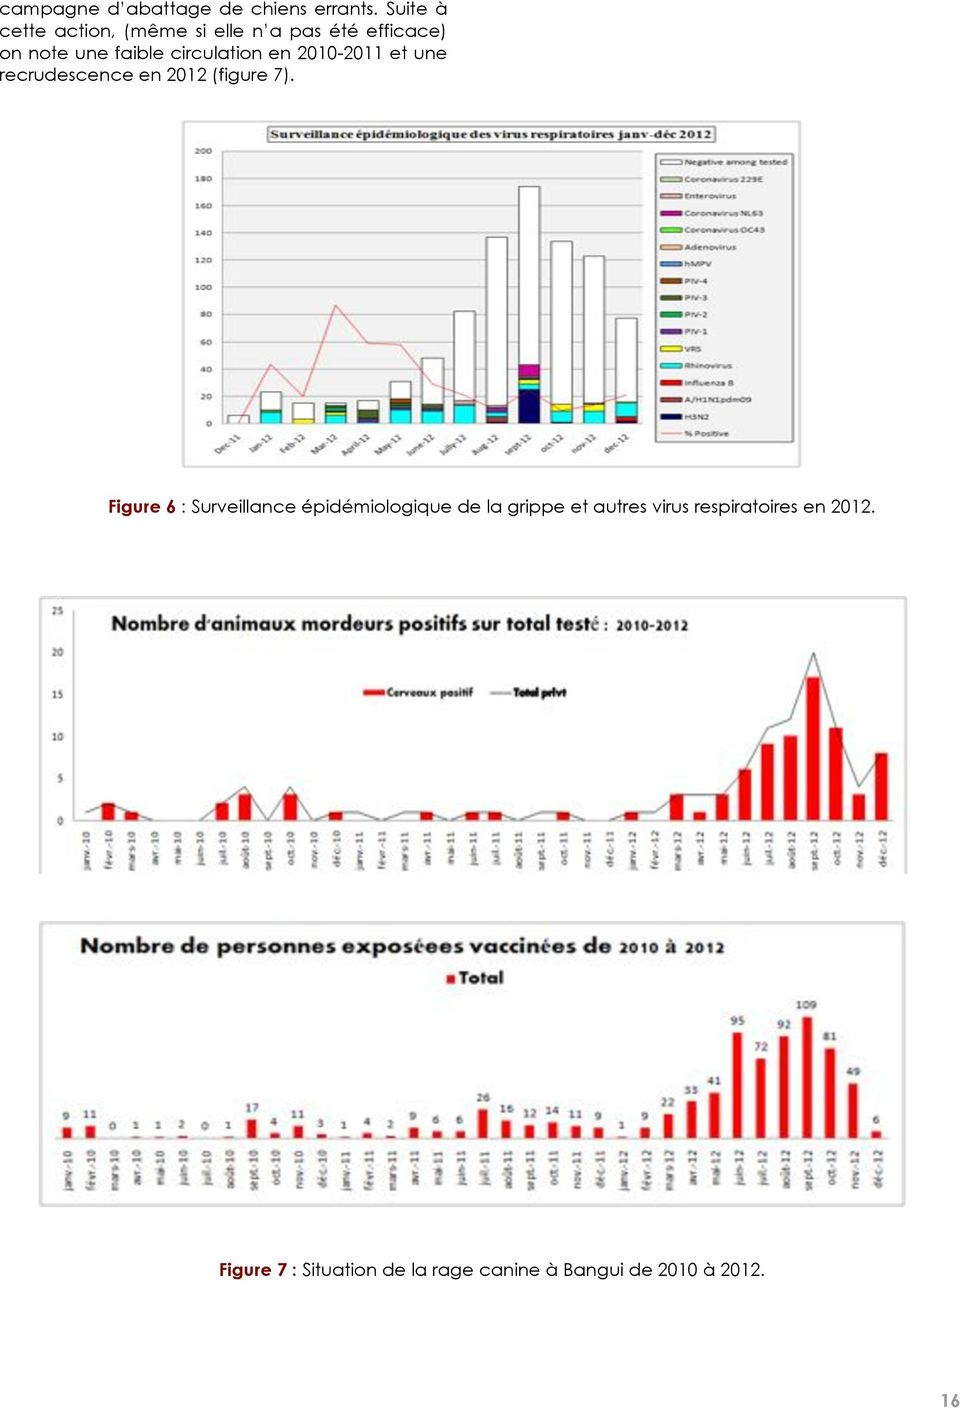 circulation en 2010-2011 et une recrudescence en 2012 (figure 7).